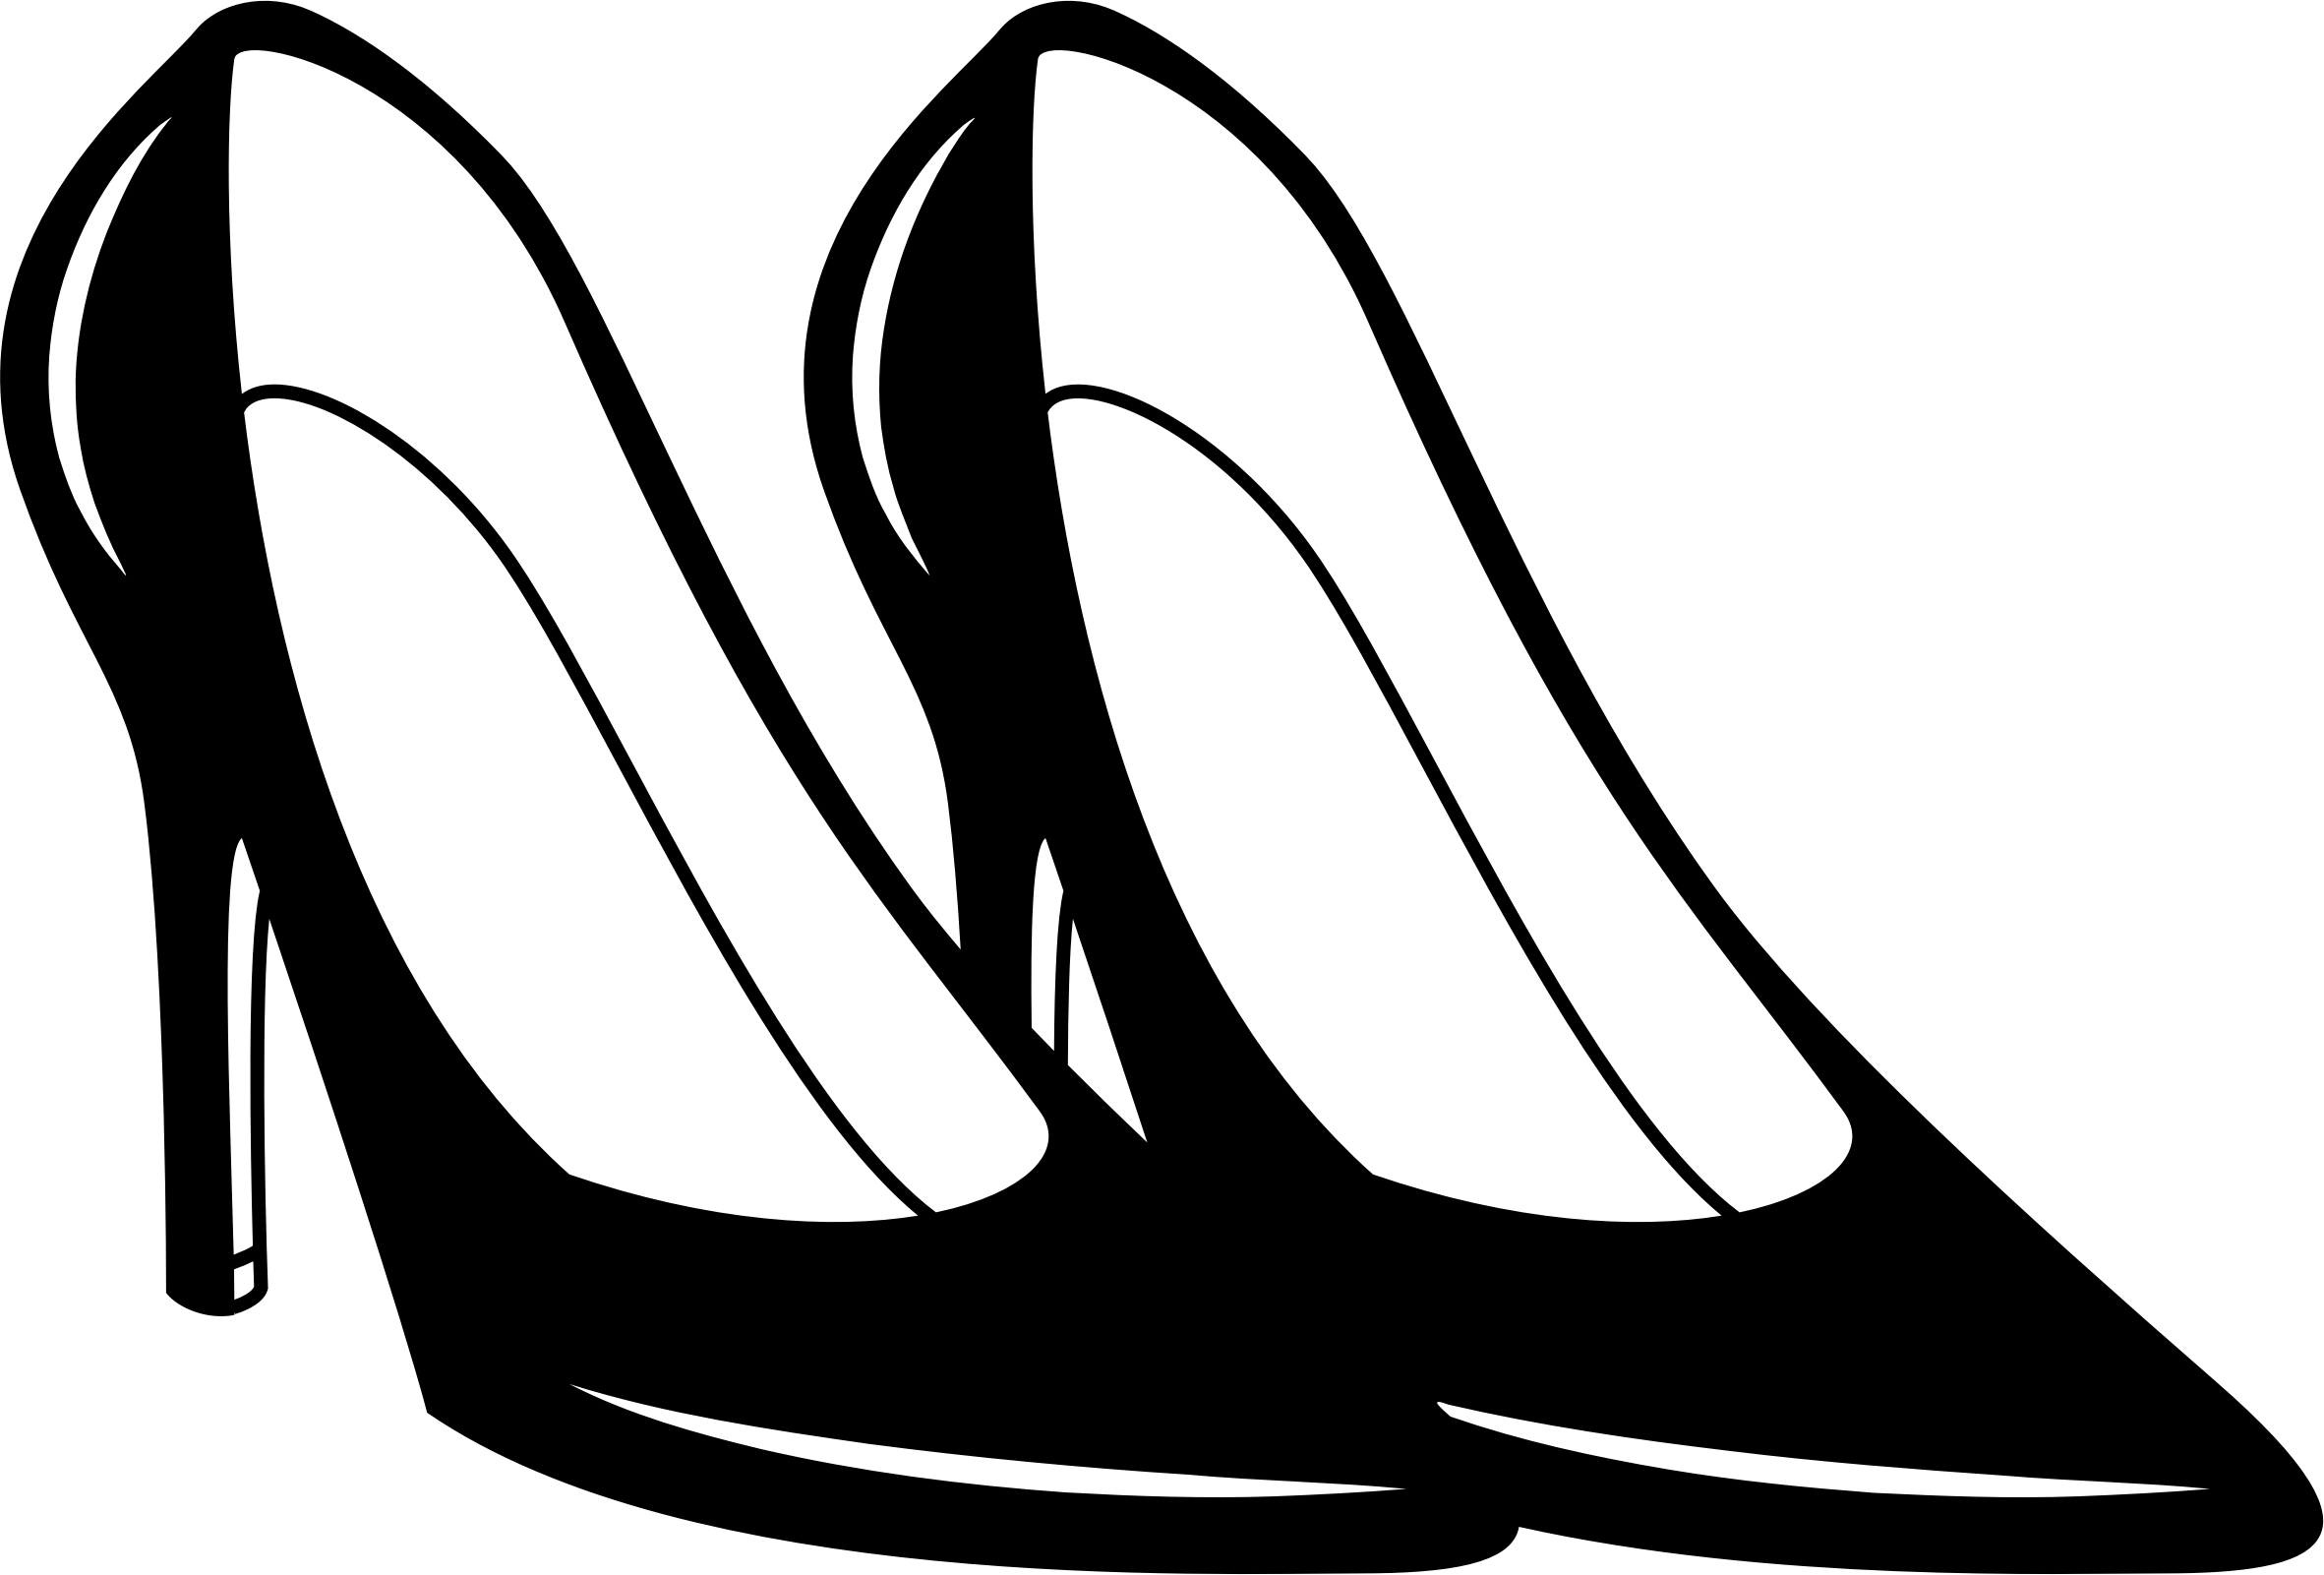 High Heel Shoes (#2) by oksmith